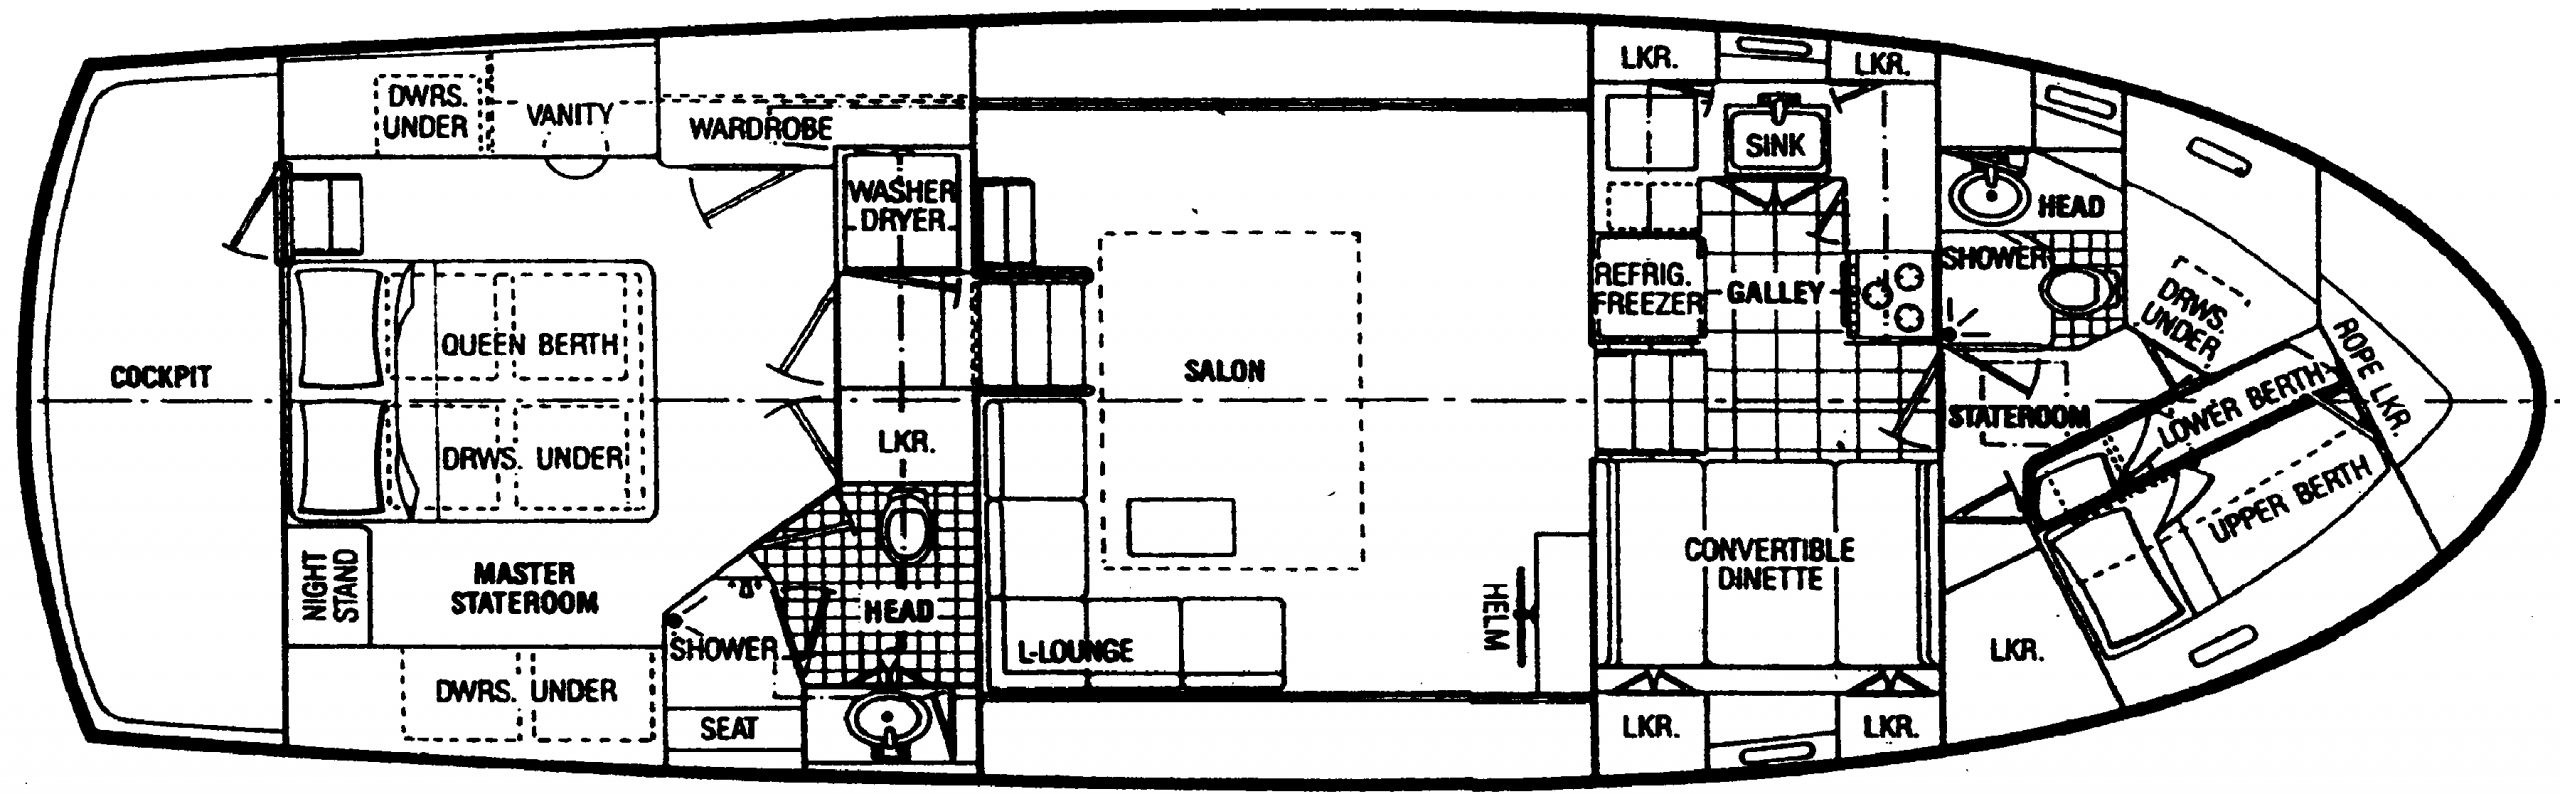 47 Motor Yacht Floor Plan 2